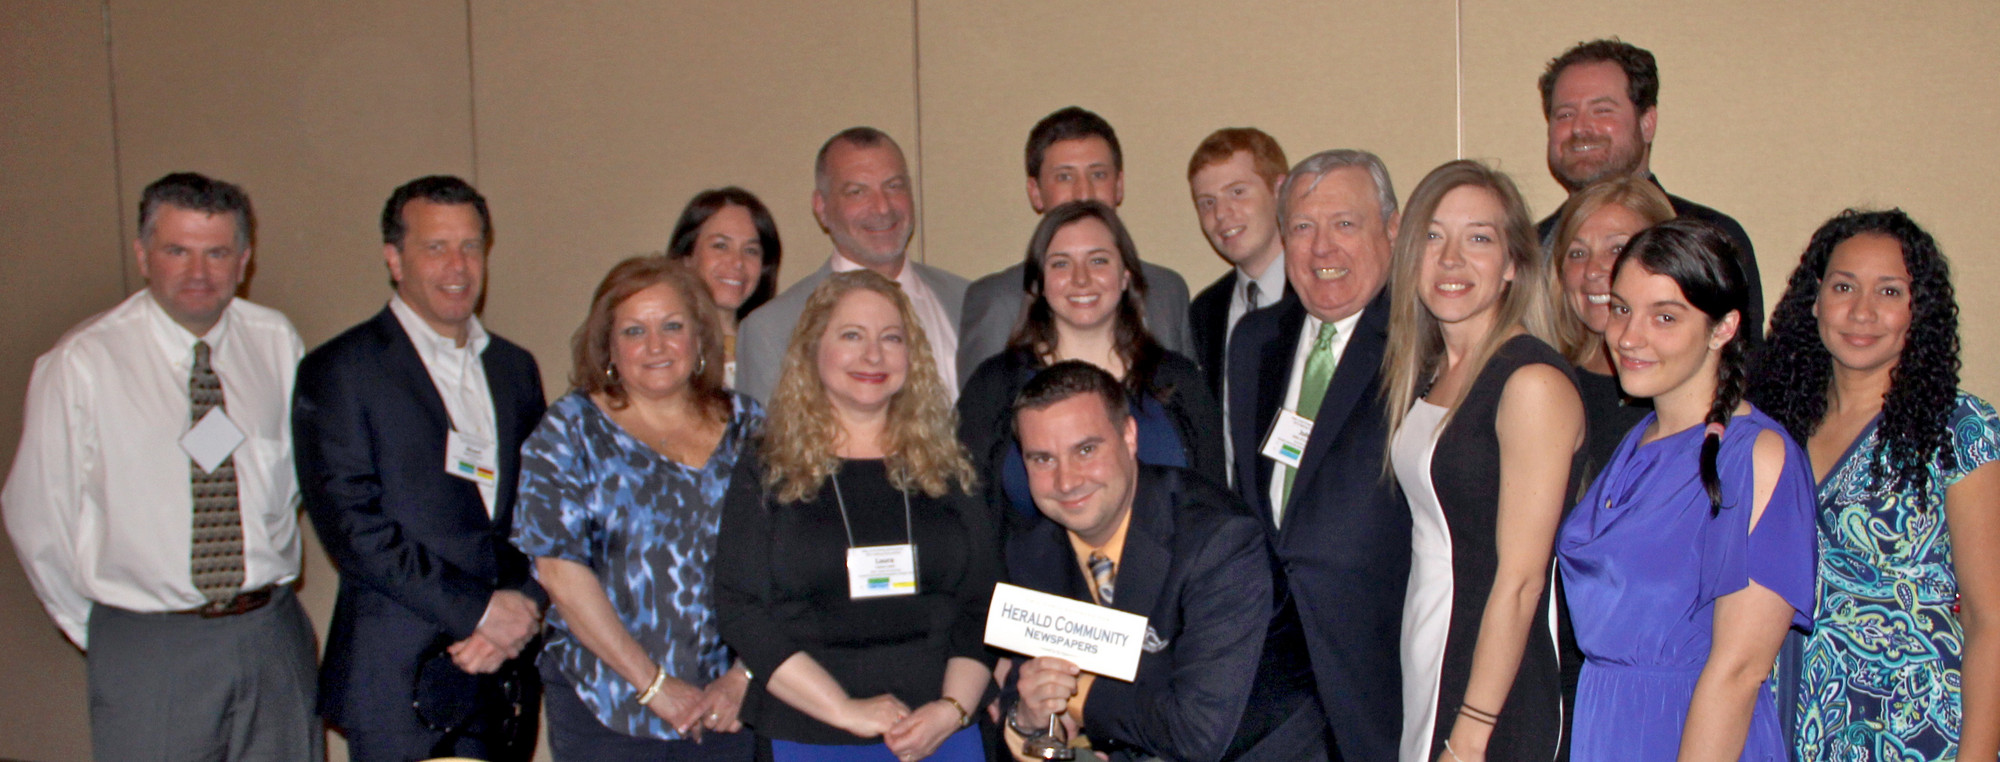 Staff members from Richner Communications, including Herald Community Newspaper, the Riverdale Press and the Oyster Bay Guardian, attended the New York Press Association convention in Saratoga Springs April 5-6.